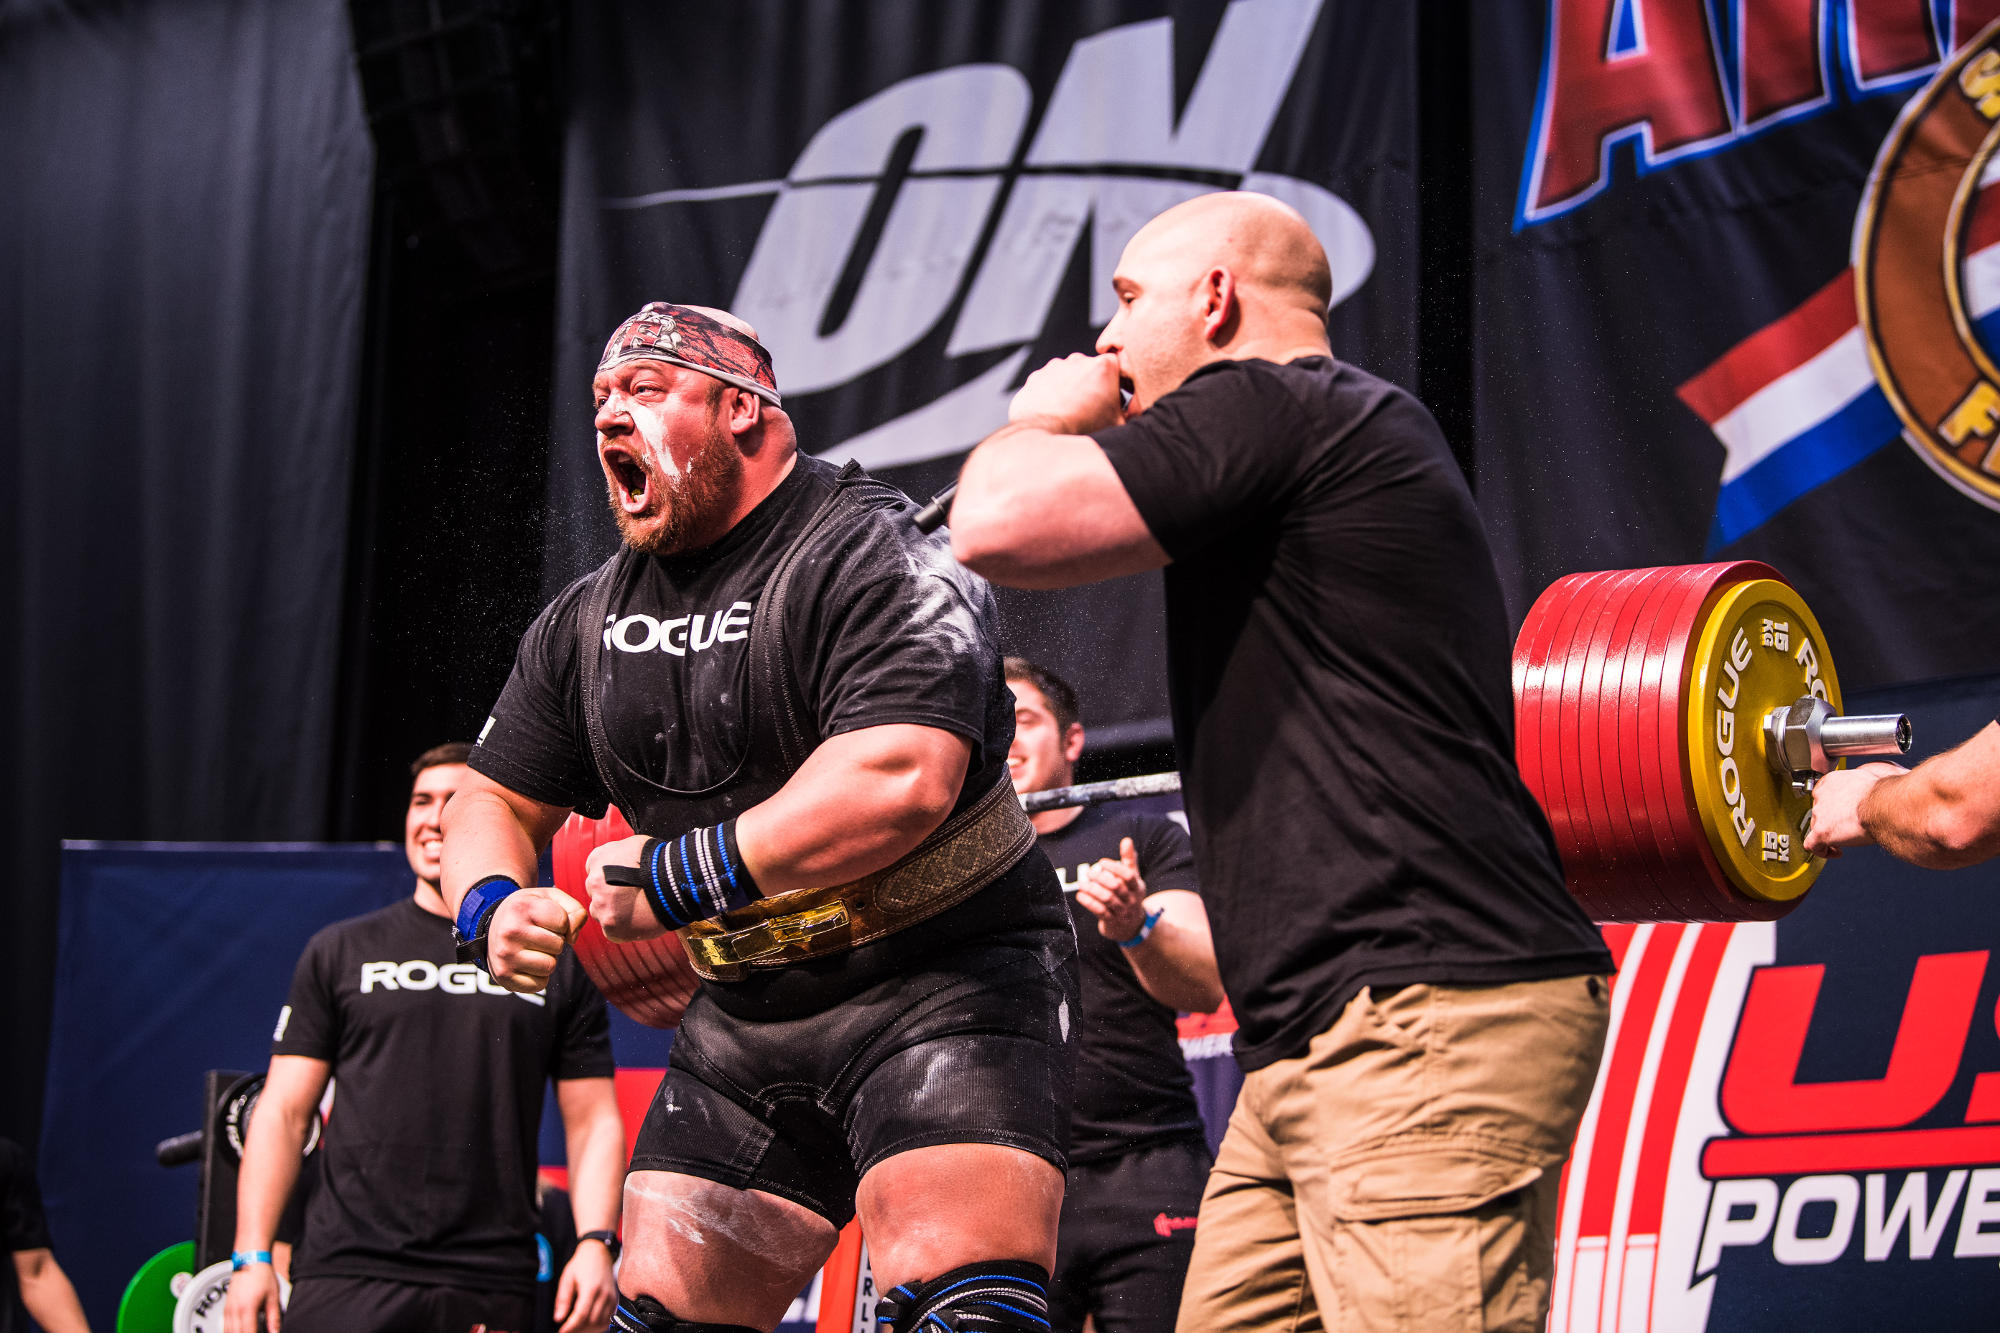 Blaine Sumner Strongest Powerlifter Of All Time Gorilla Squad